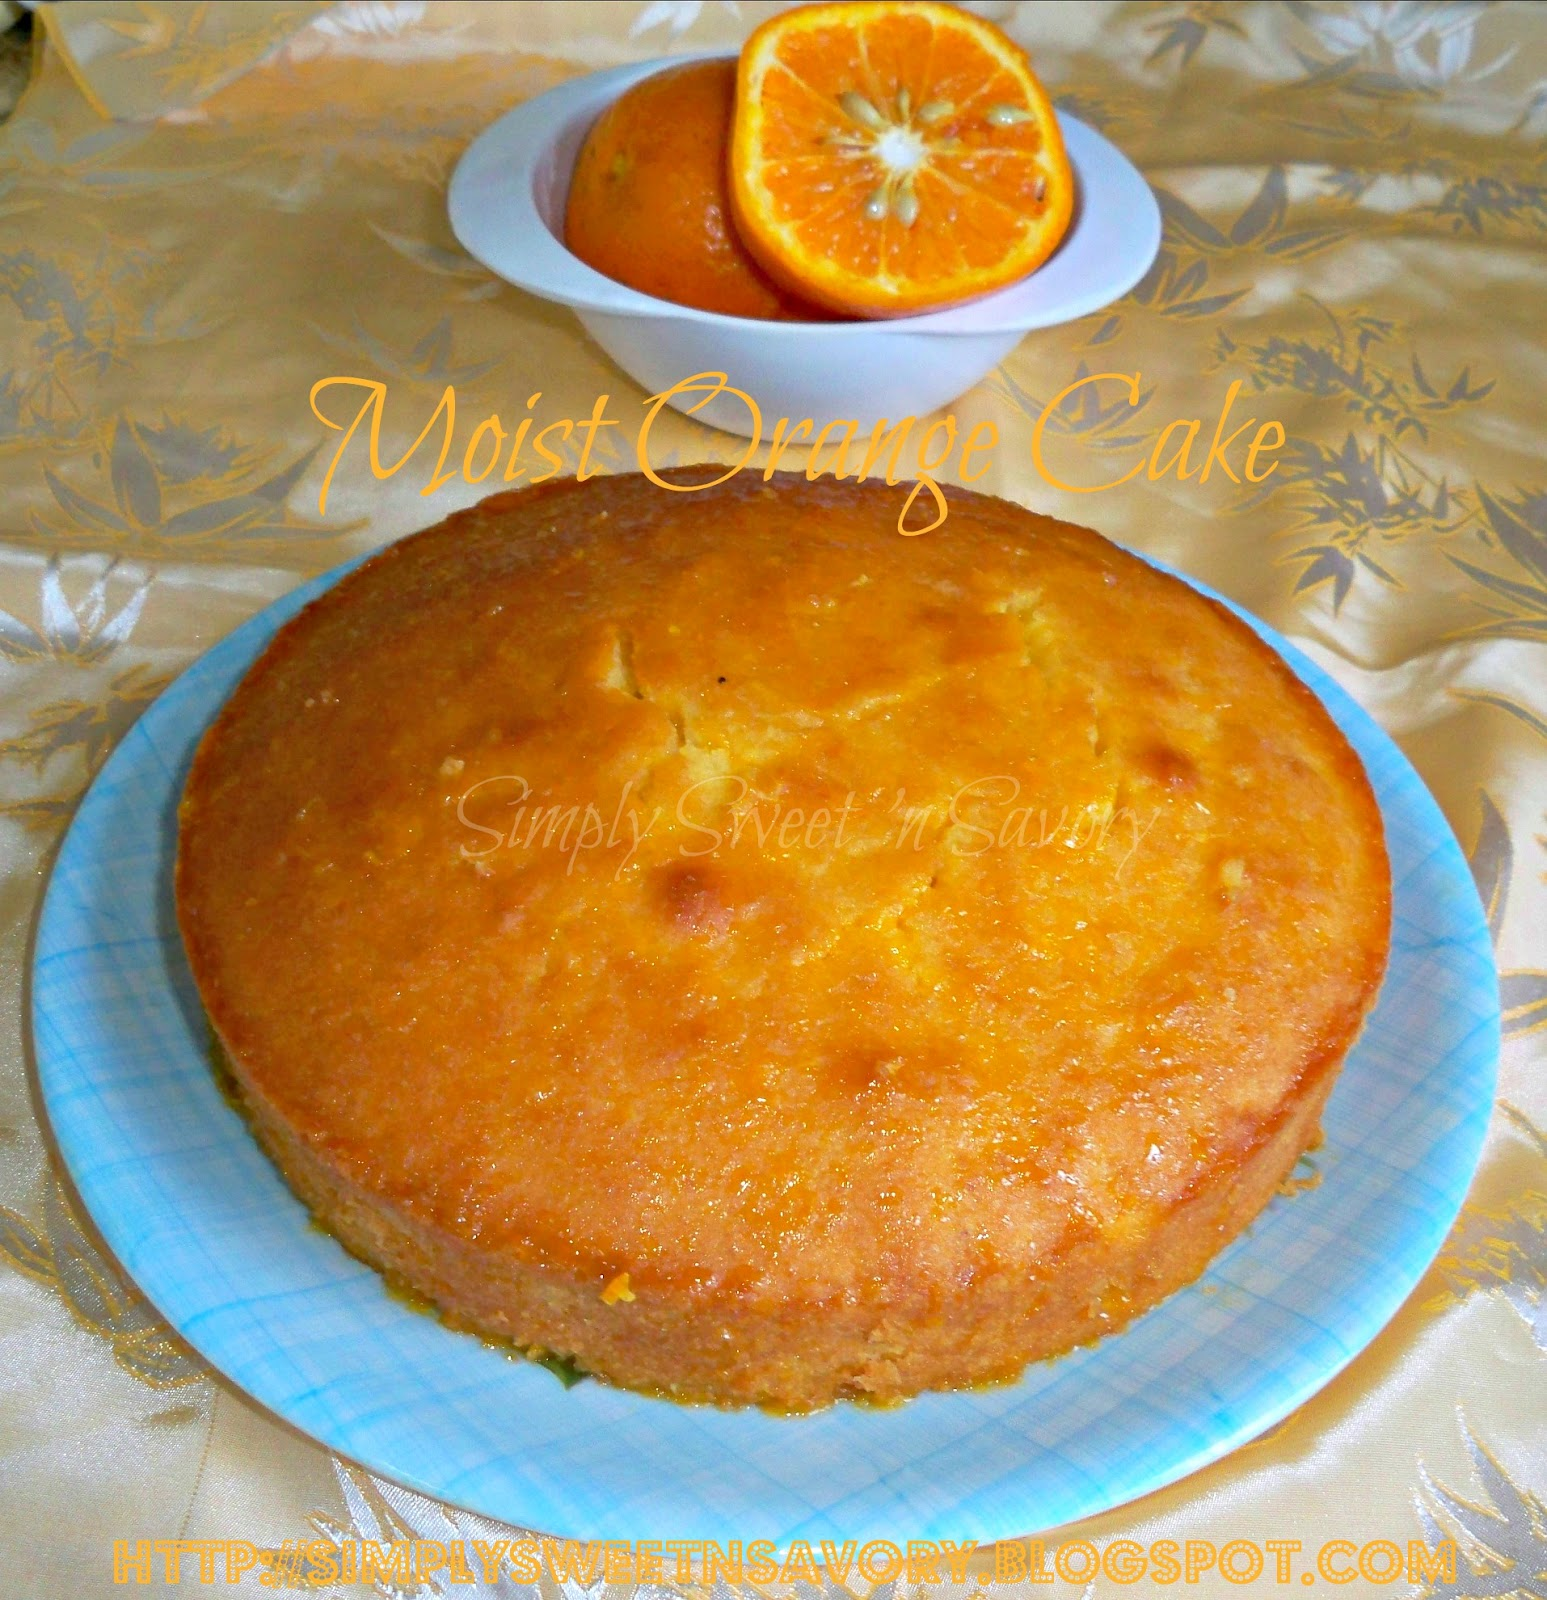 Simply Sweet 'n Savory: Moist Orange Cake